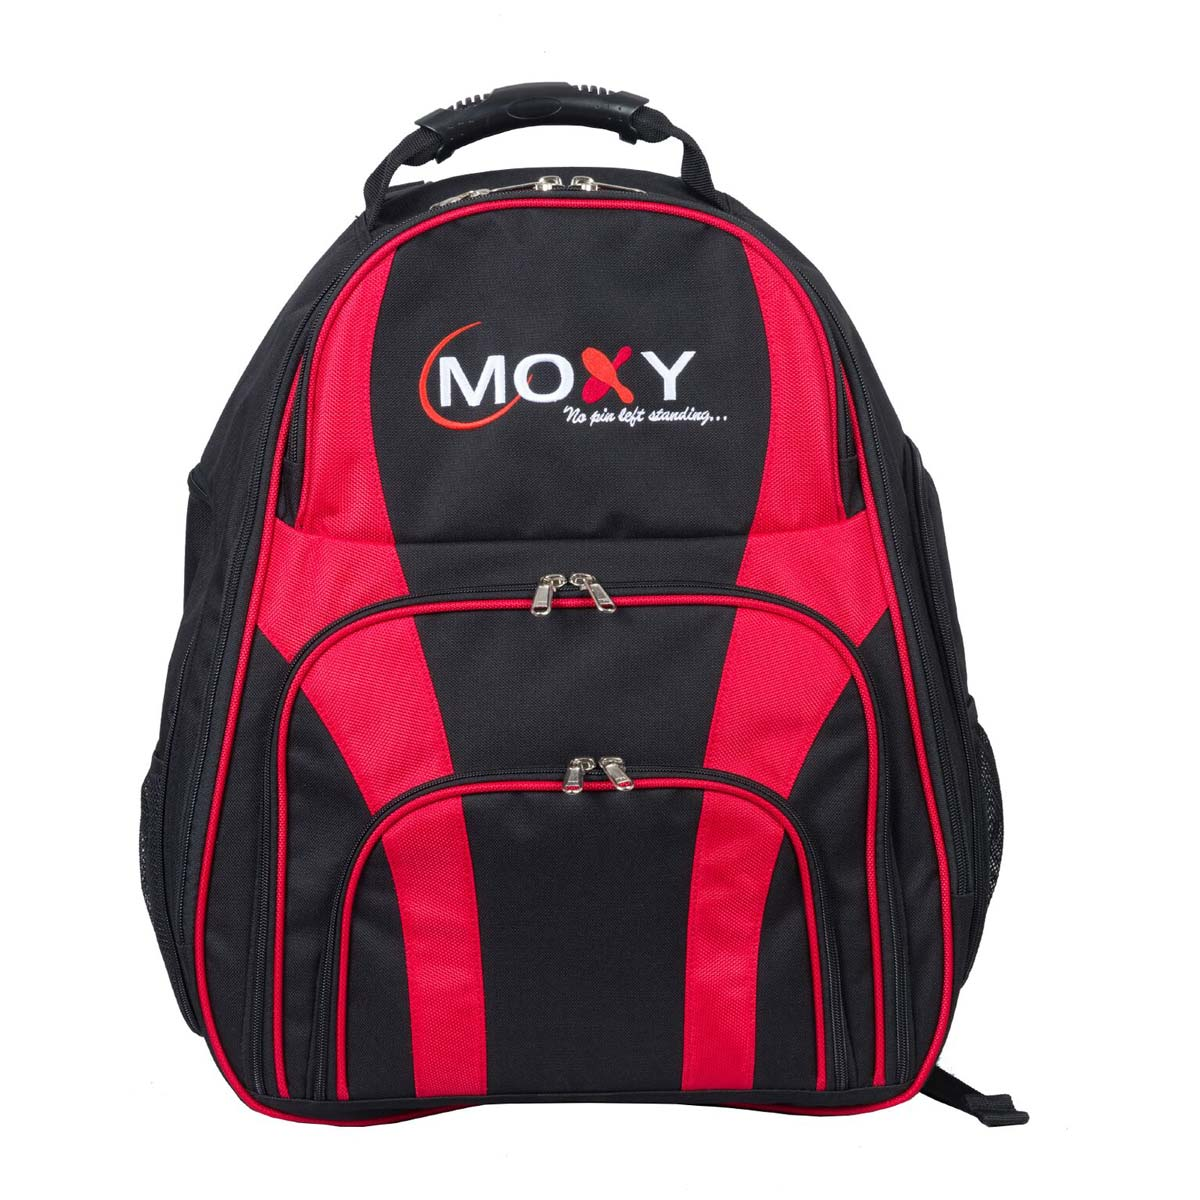 Moxy Duo Backpack Bowling Bag - Black/Red